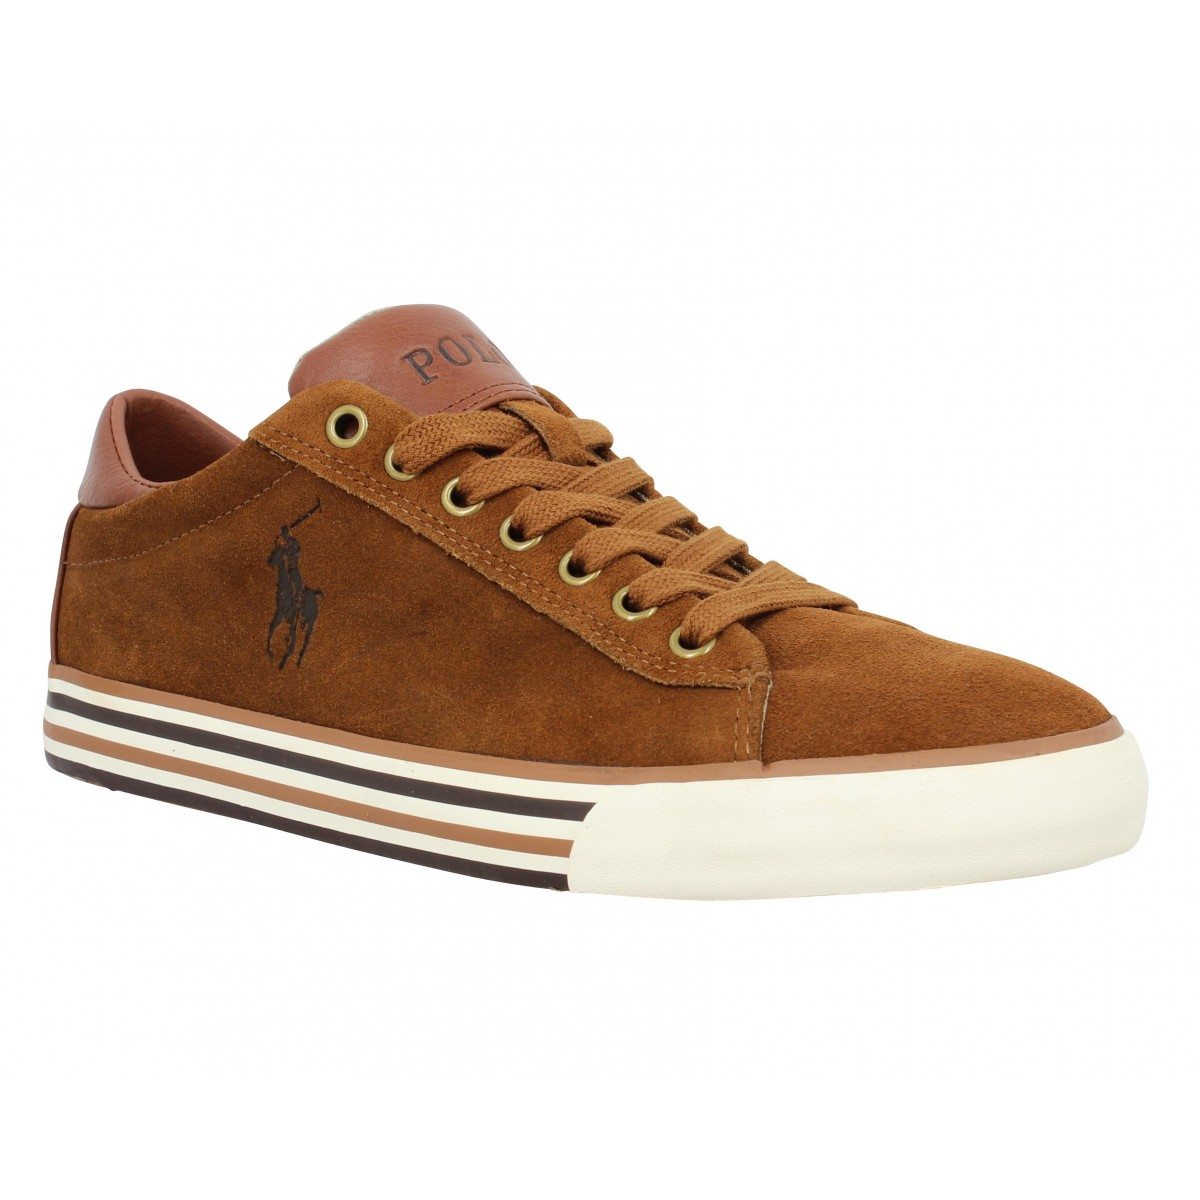 Baskets POLO RALPH LAUREN Harvey velours Homme Cognac